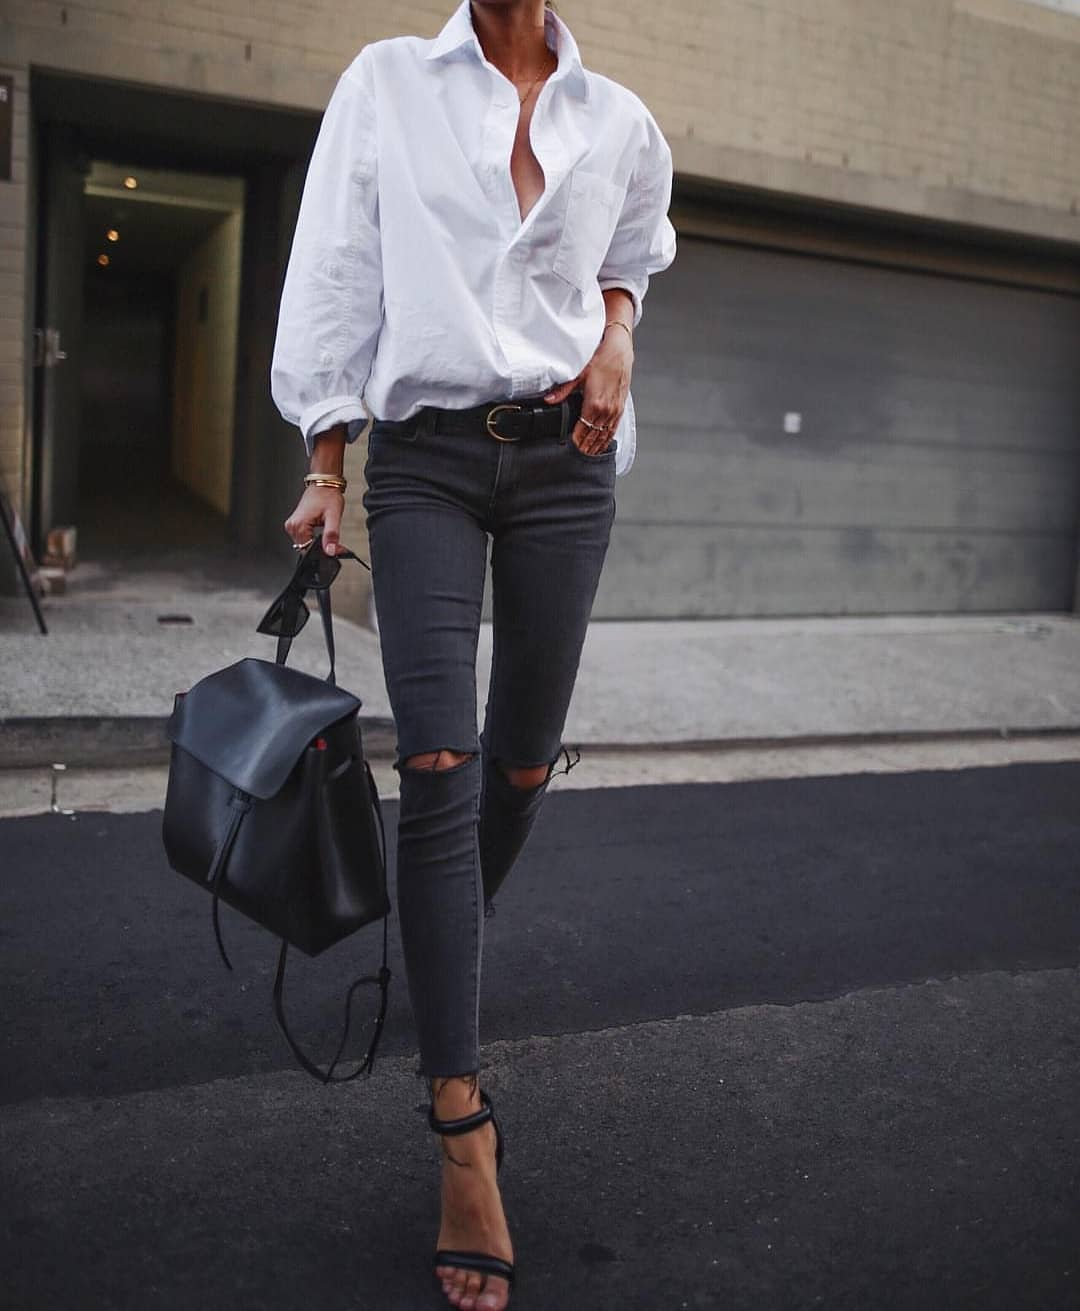 How To Wear Menswear Clothes For Women: White Shirt + Jeans 2021